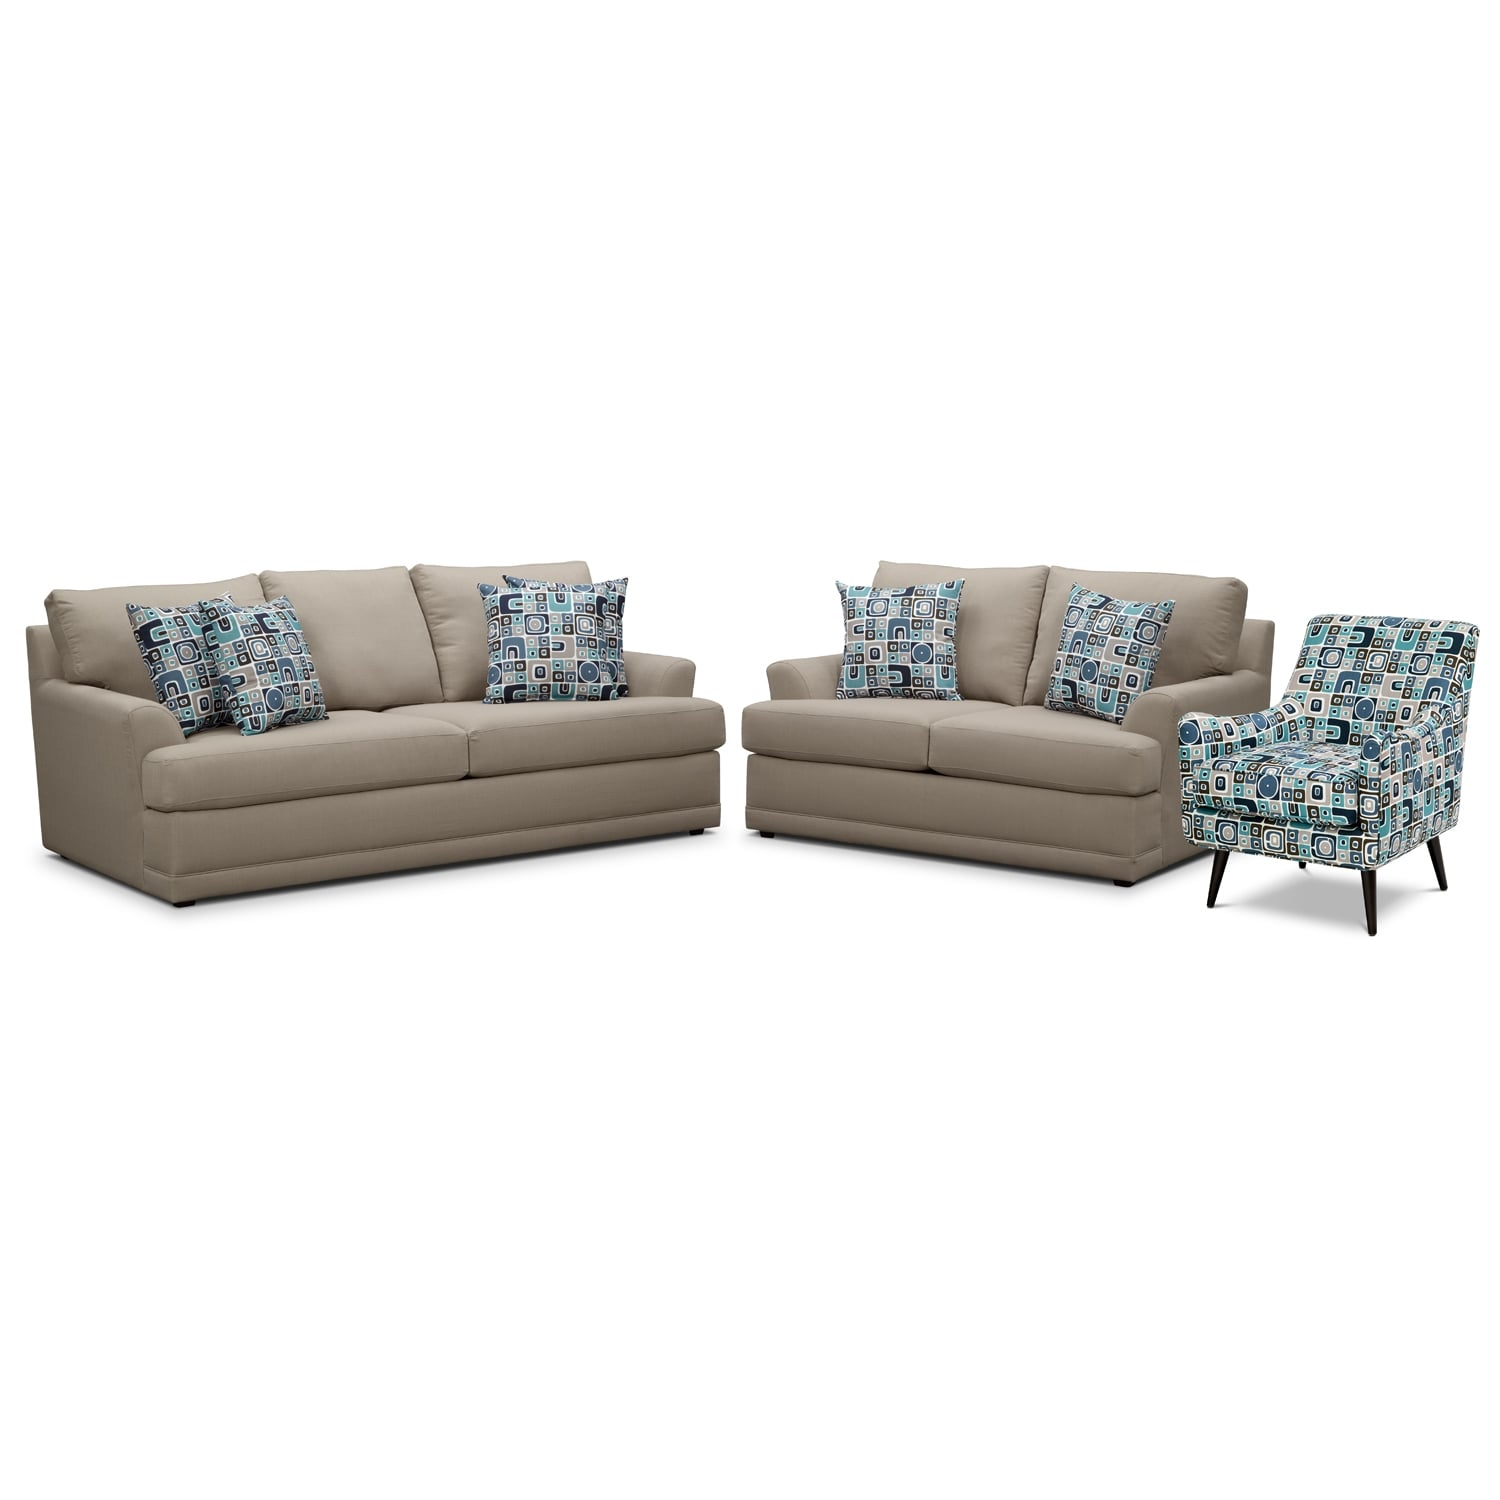 [Kismet II 3 Pc. Living Room w/ Accent Chair]